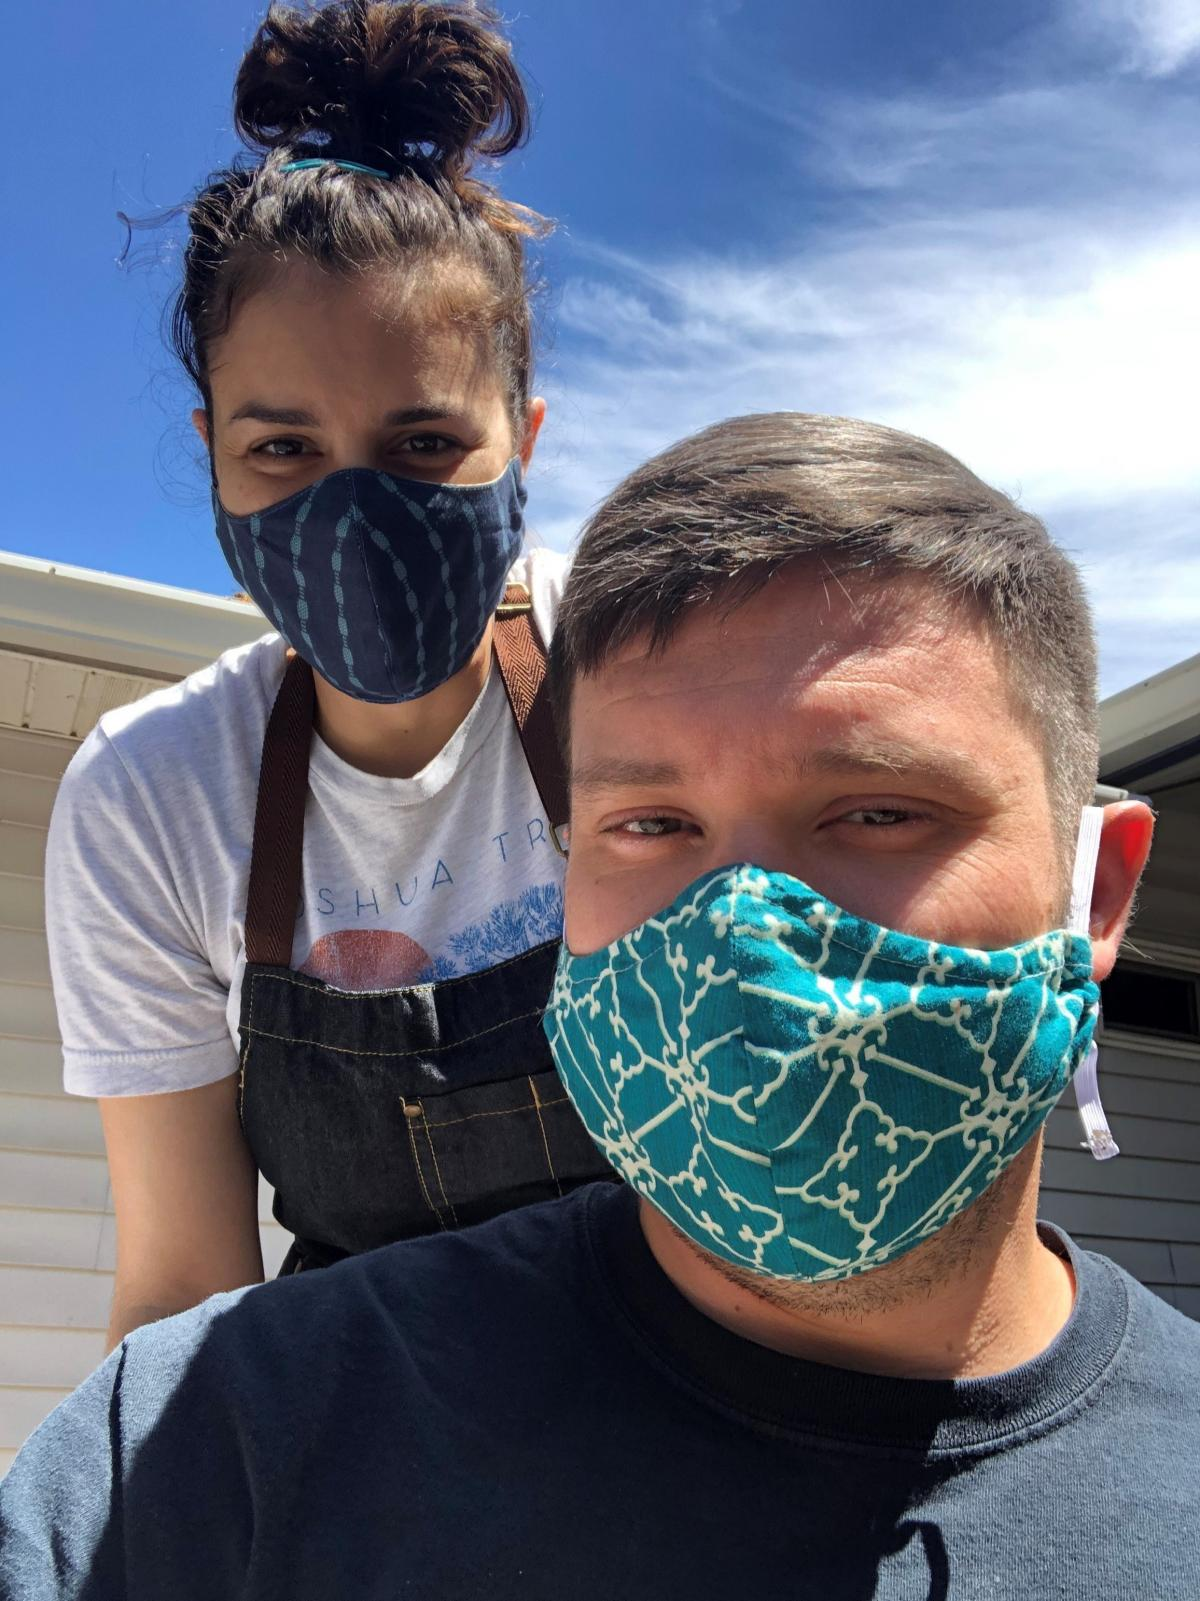 """Hairstylist Ashley Weiner cuts a friend's hair outdoors. She says she's worried about returning to work. She says that before the pandemic customers would often show up sick. """"They come and sit in my chair, and I often get sick and bring that home."""" She s"""